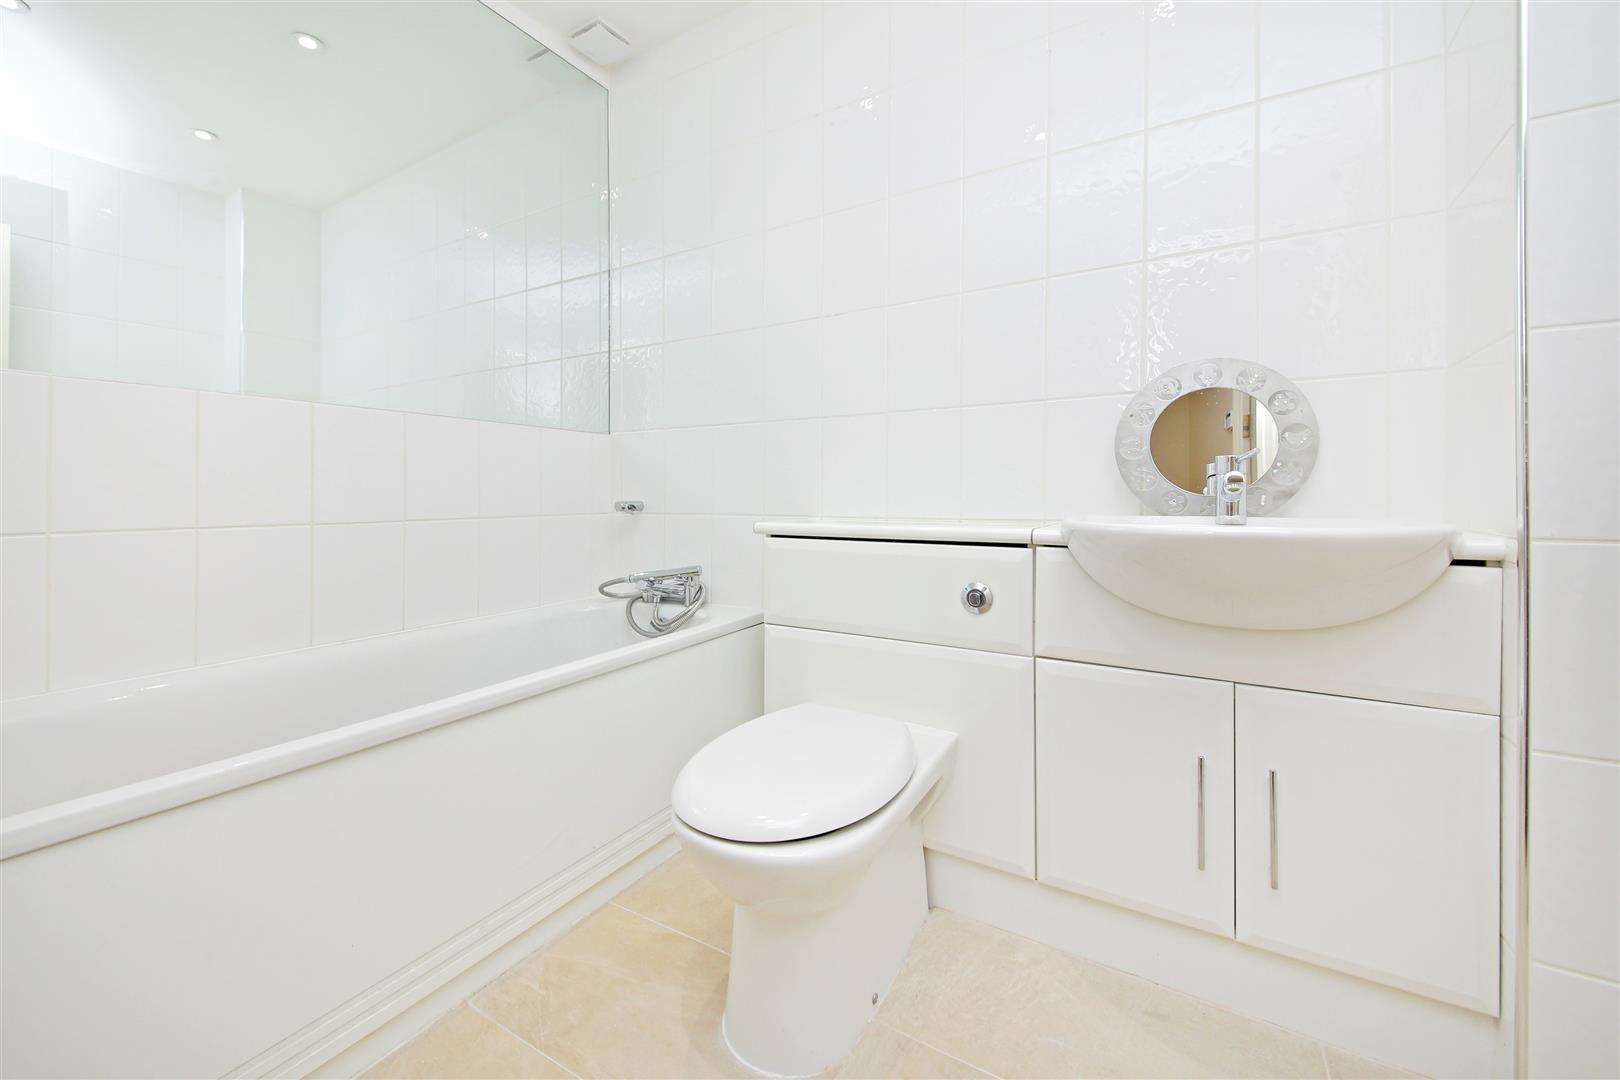 4 bed to rent in Shenley - (Property Image 12)